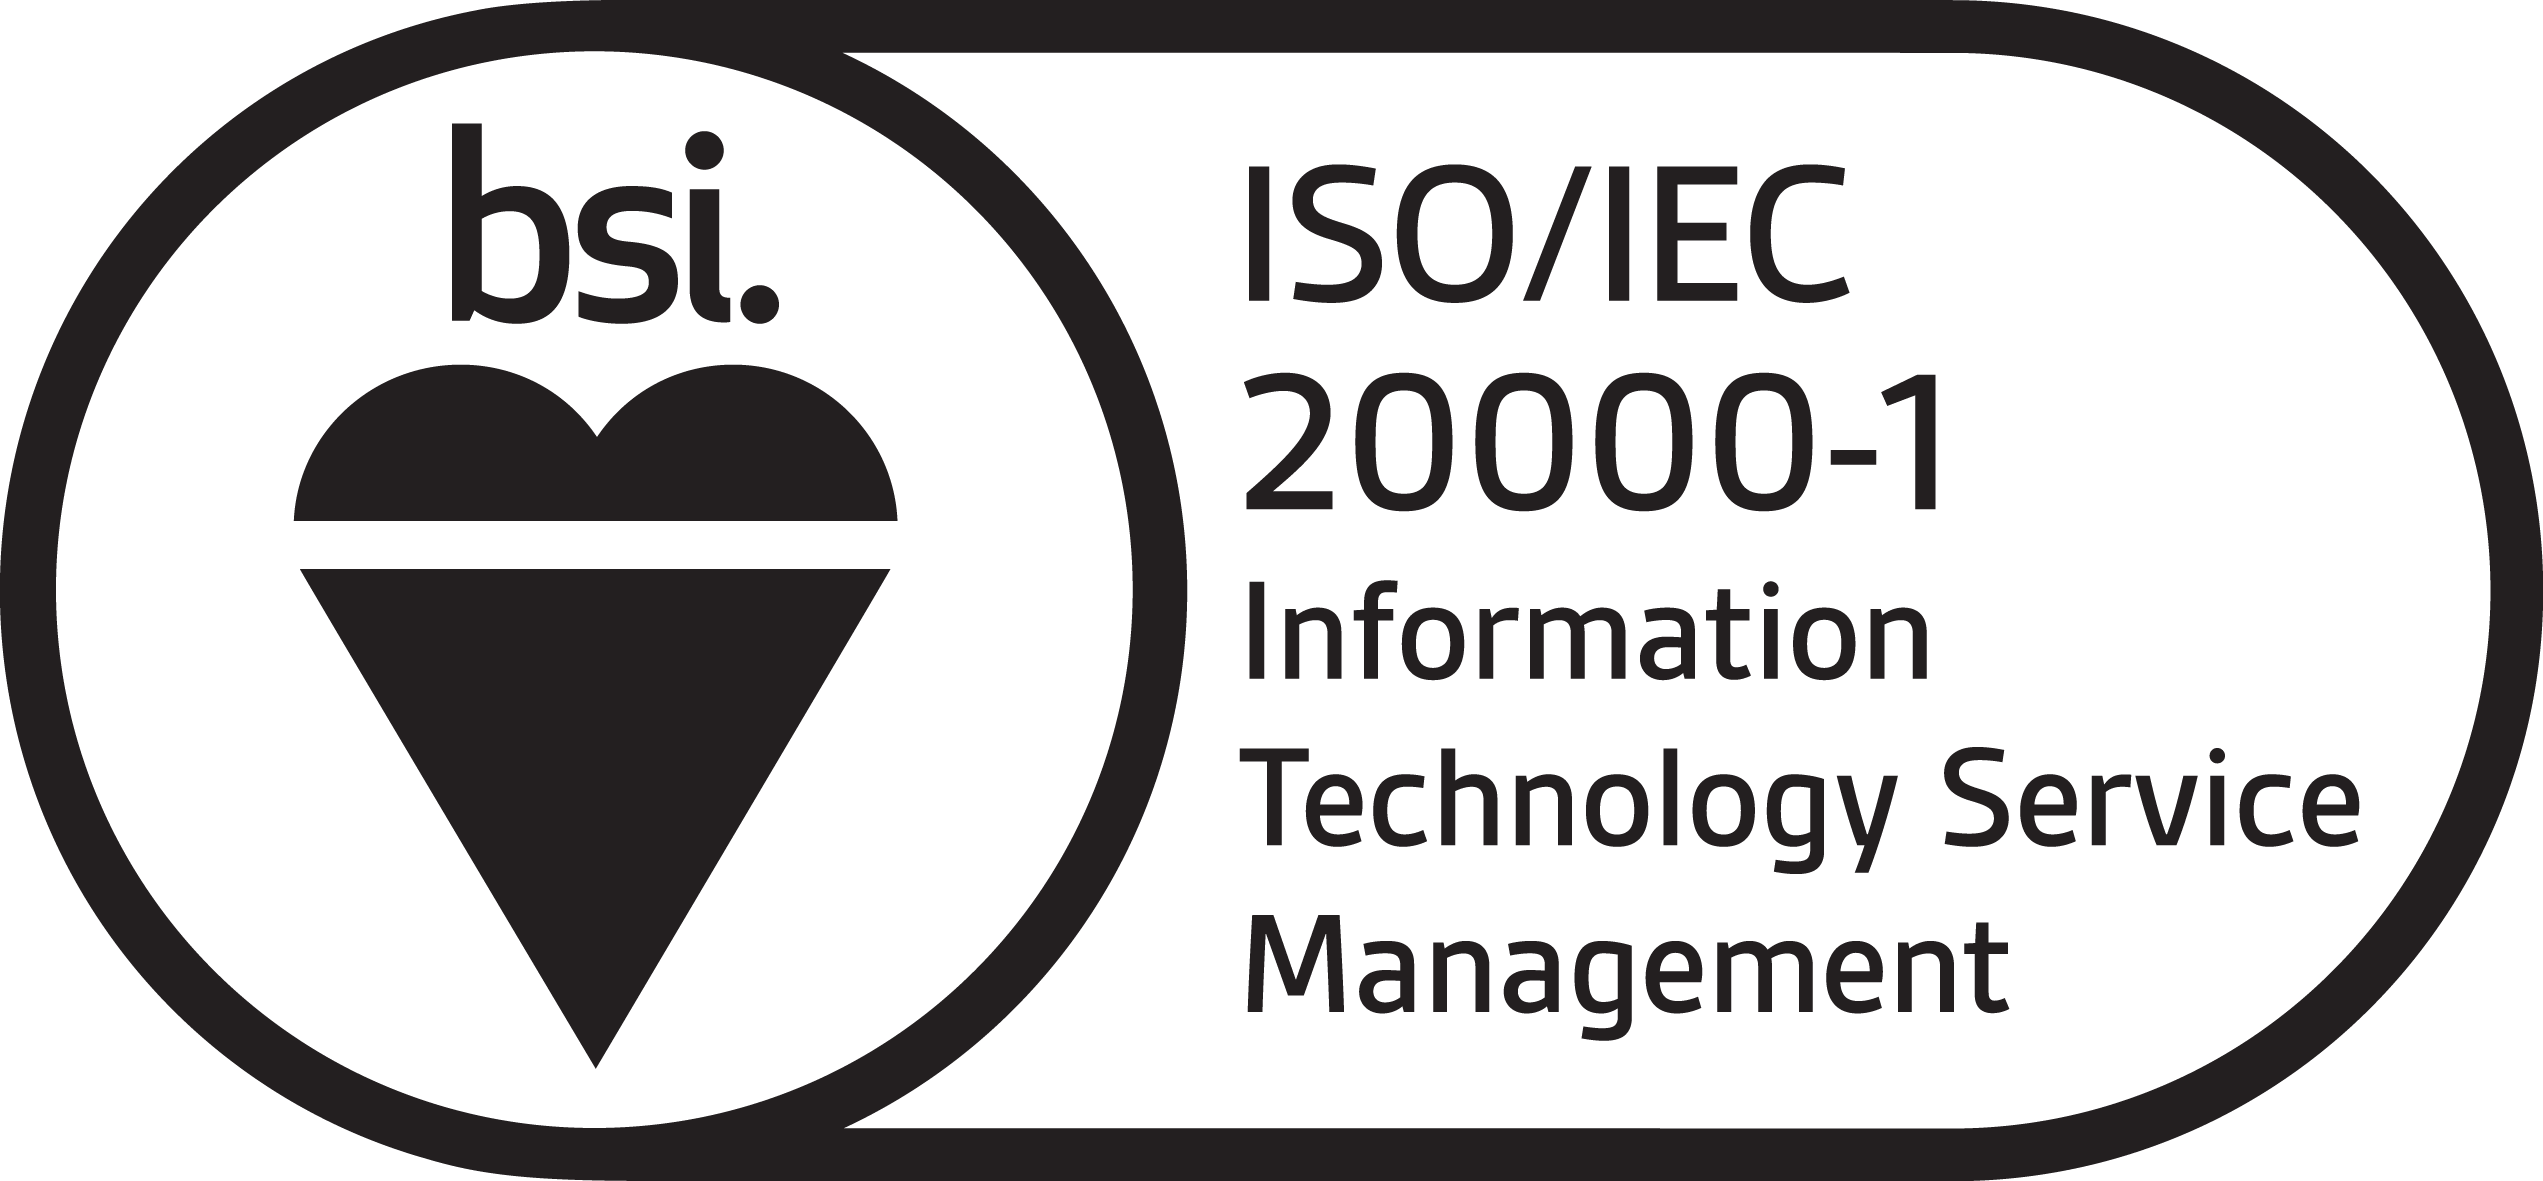 Csa successfully certifies as iso 20000 compliant organization iso 20000 certification 1betcityfo Choice Image